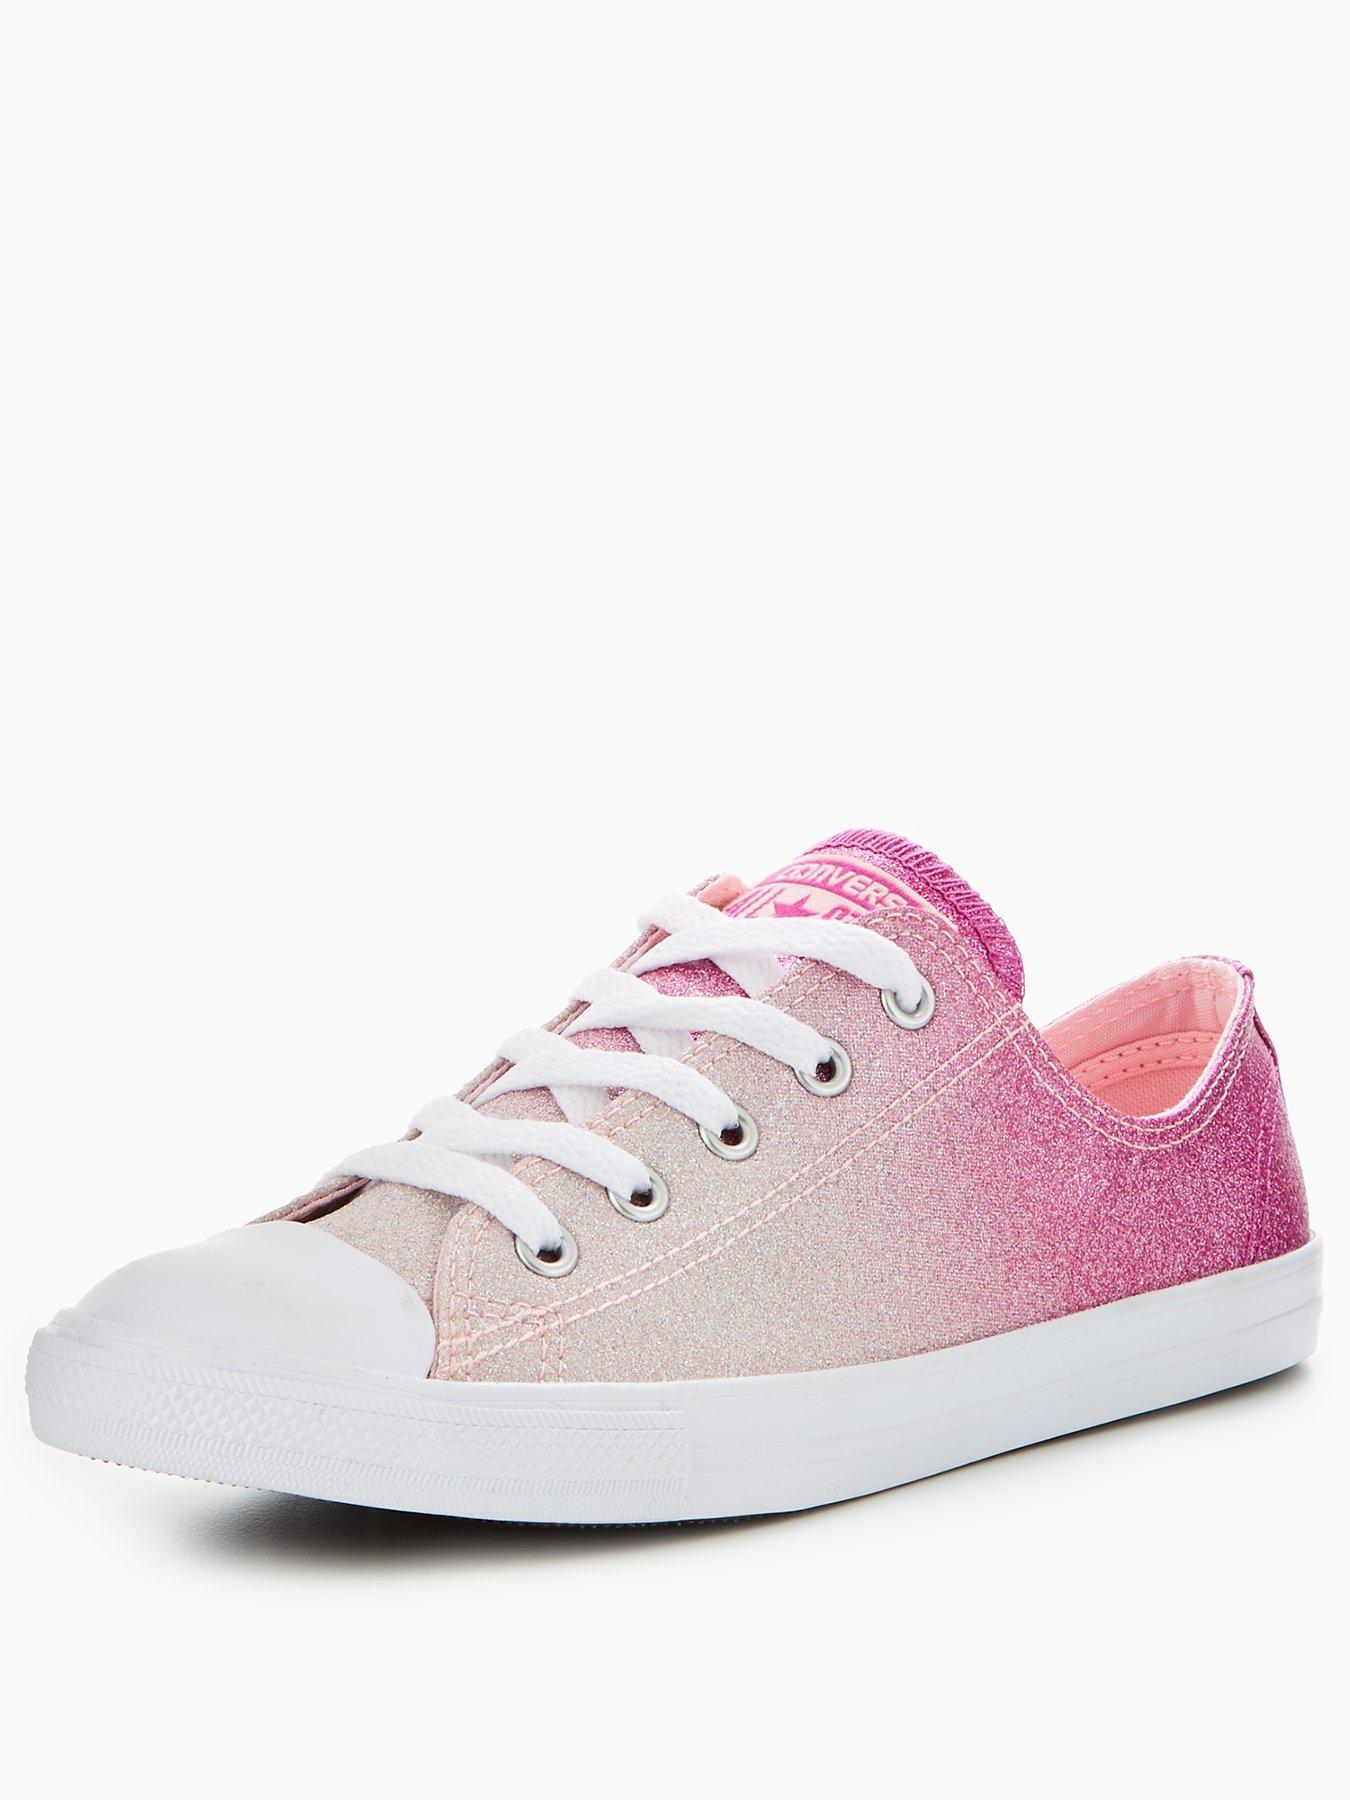 converse all star ox quilted metallic